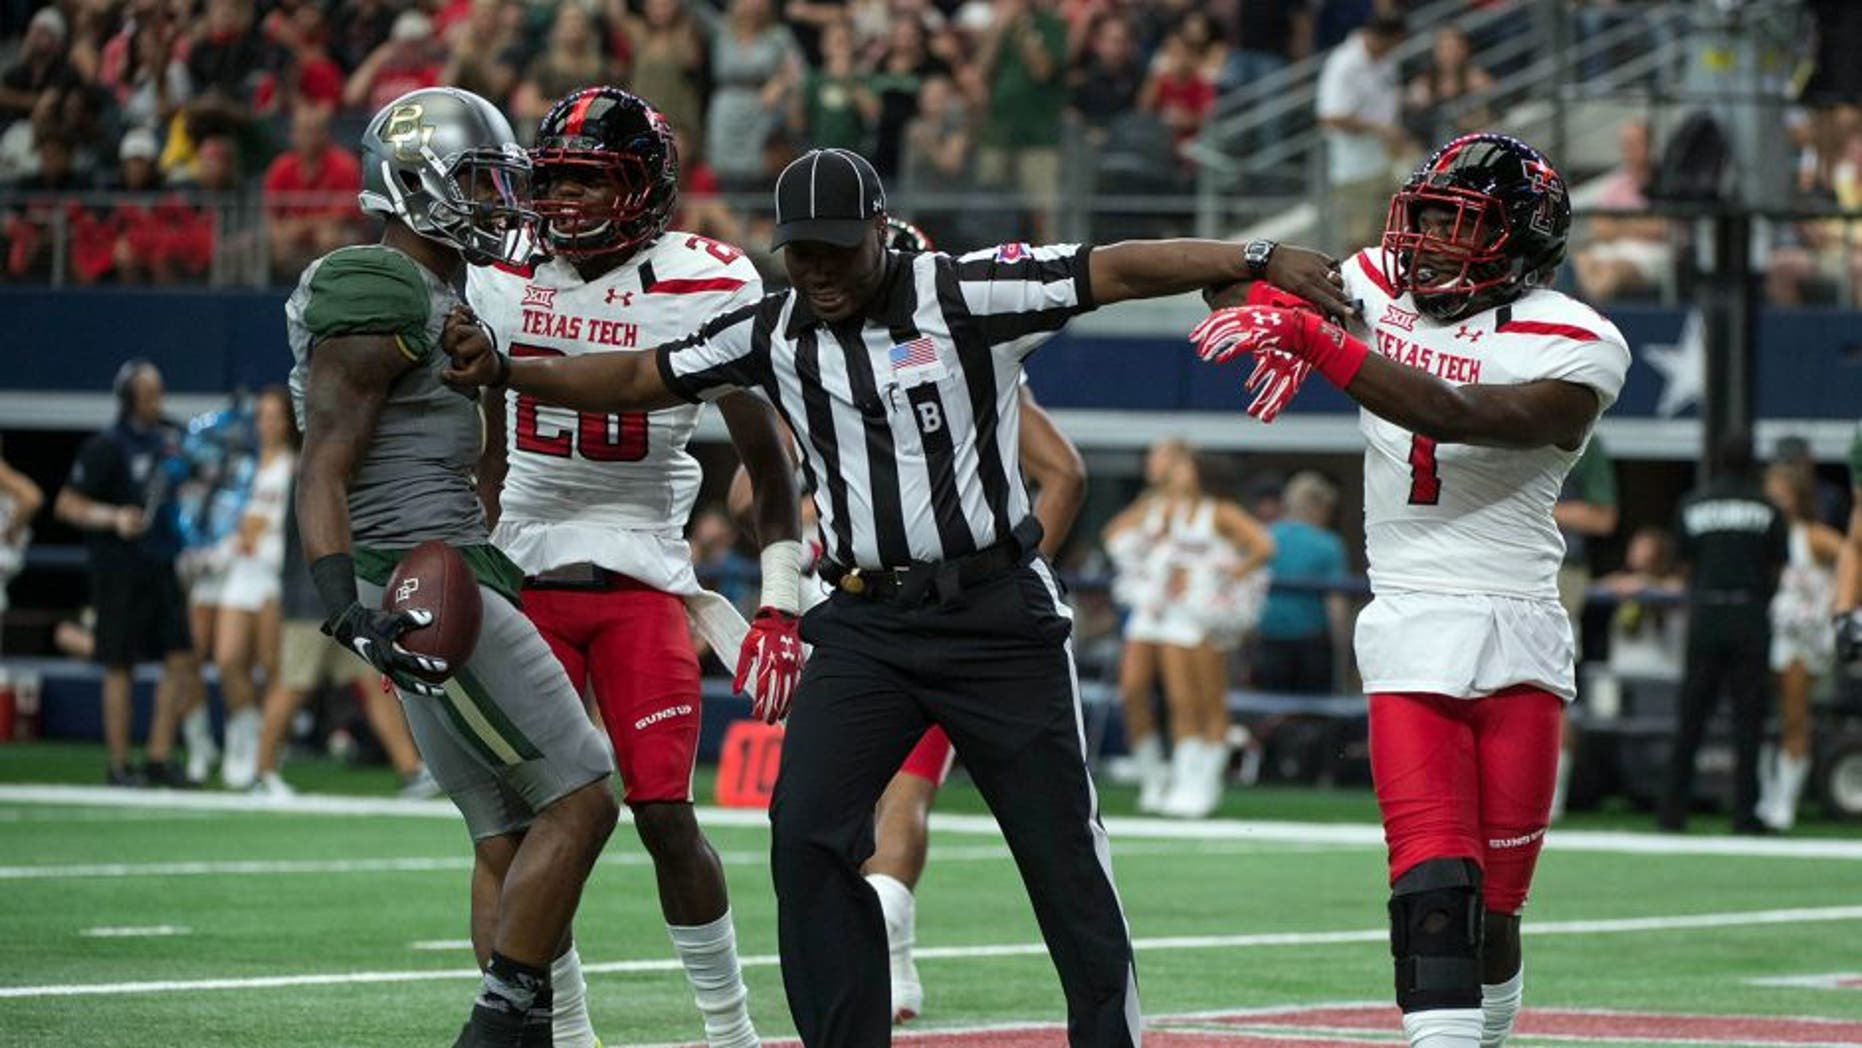 Oct 3, 2015; Arlington, TX, USA; Baylor Bears wide receiver Corey Coleman (1) and Texas Tech Red Raiders defensive back Jah'Shawn Johnson (7) are separated by back judge Lyndon Nixon after Coleman scores a touchdown during the first quarter at AT&T Stadium. Mandatory Credit: Jerome Miron-USA TODAY Sports